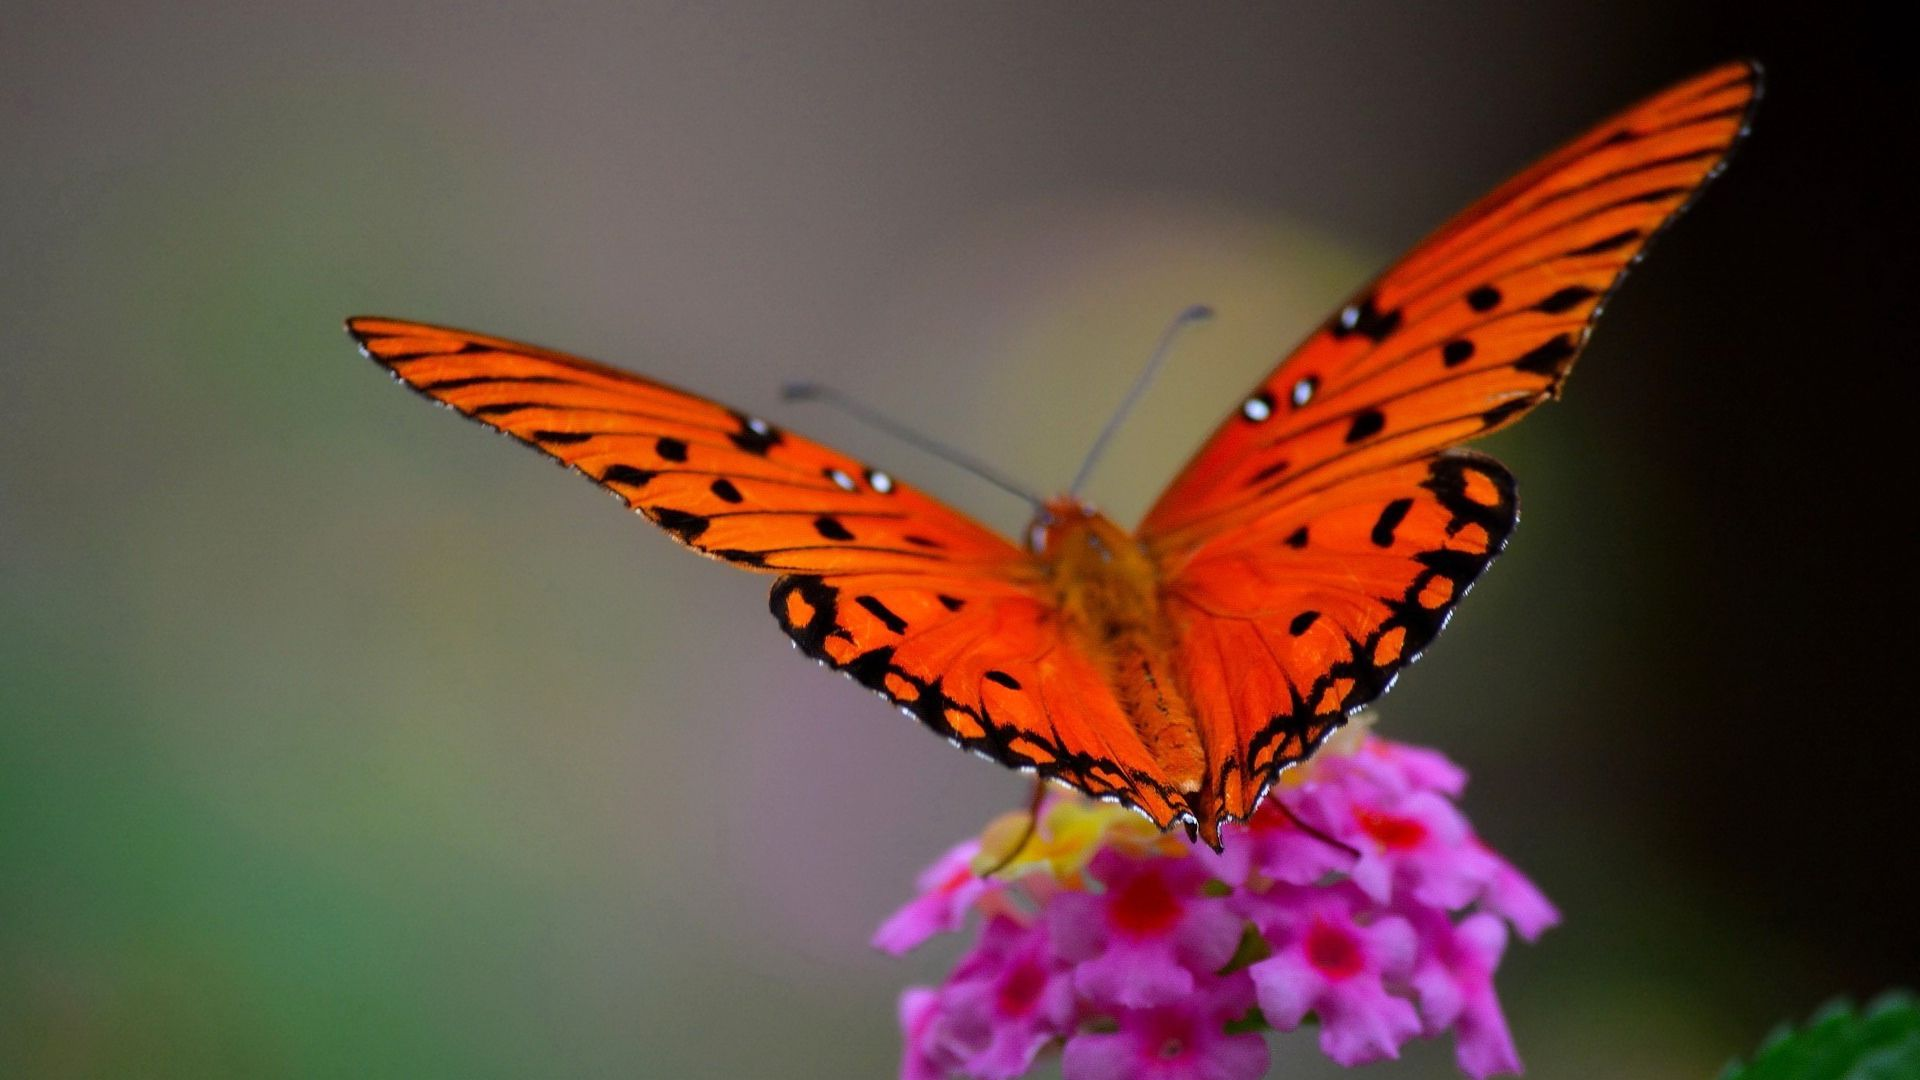 Red Butterfly Wallpapers - Top Free Red Butterfly